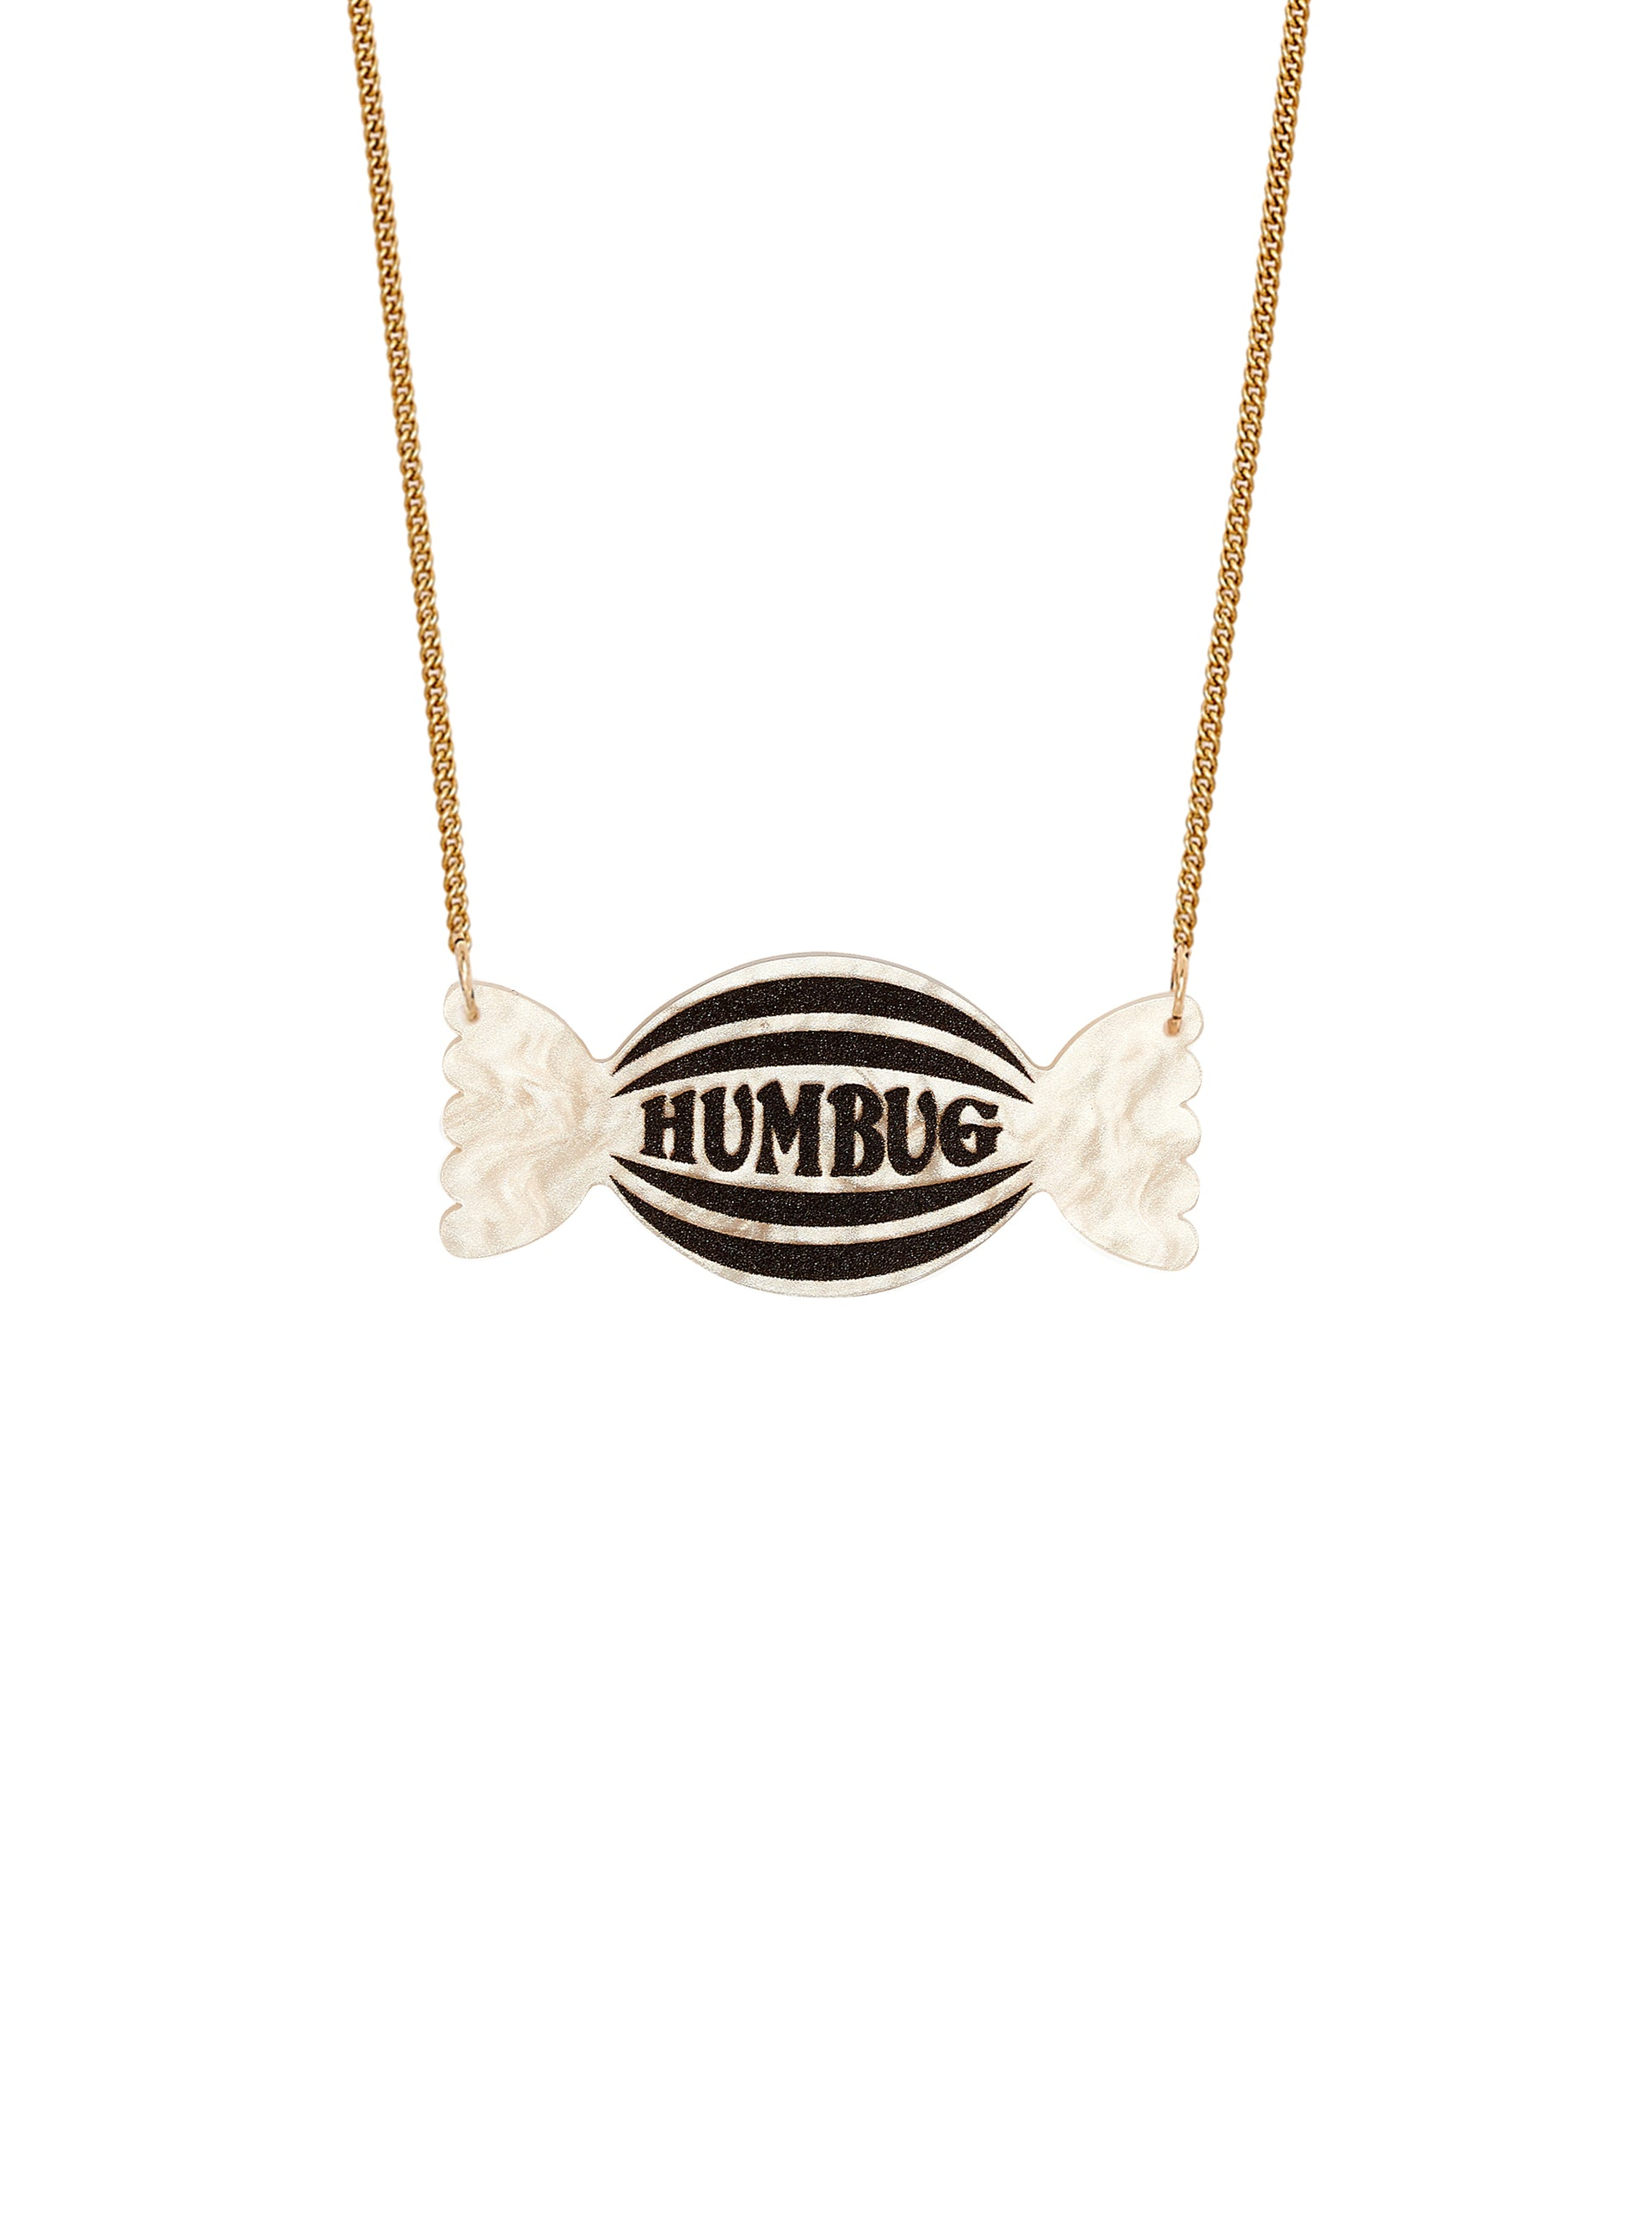 Humbug Sweetie Necklace